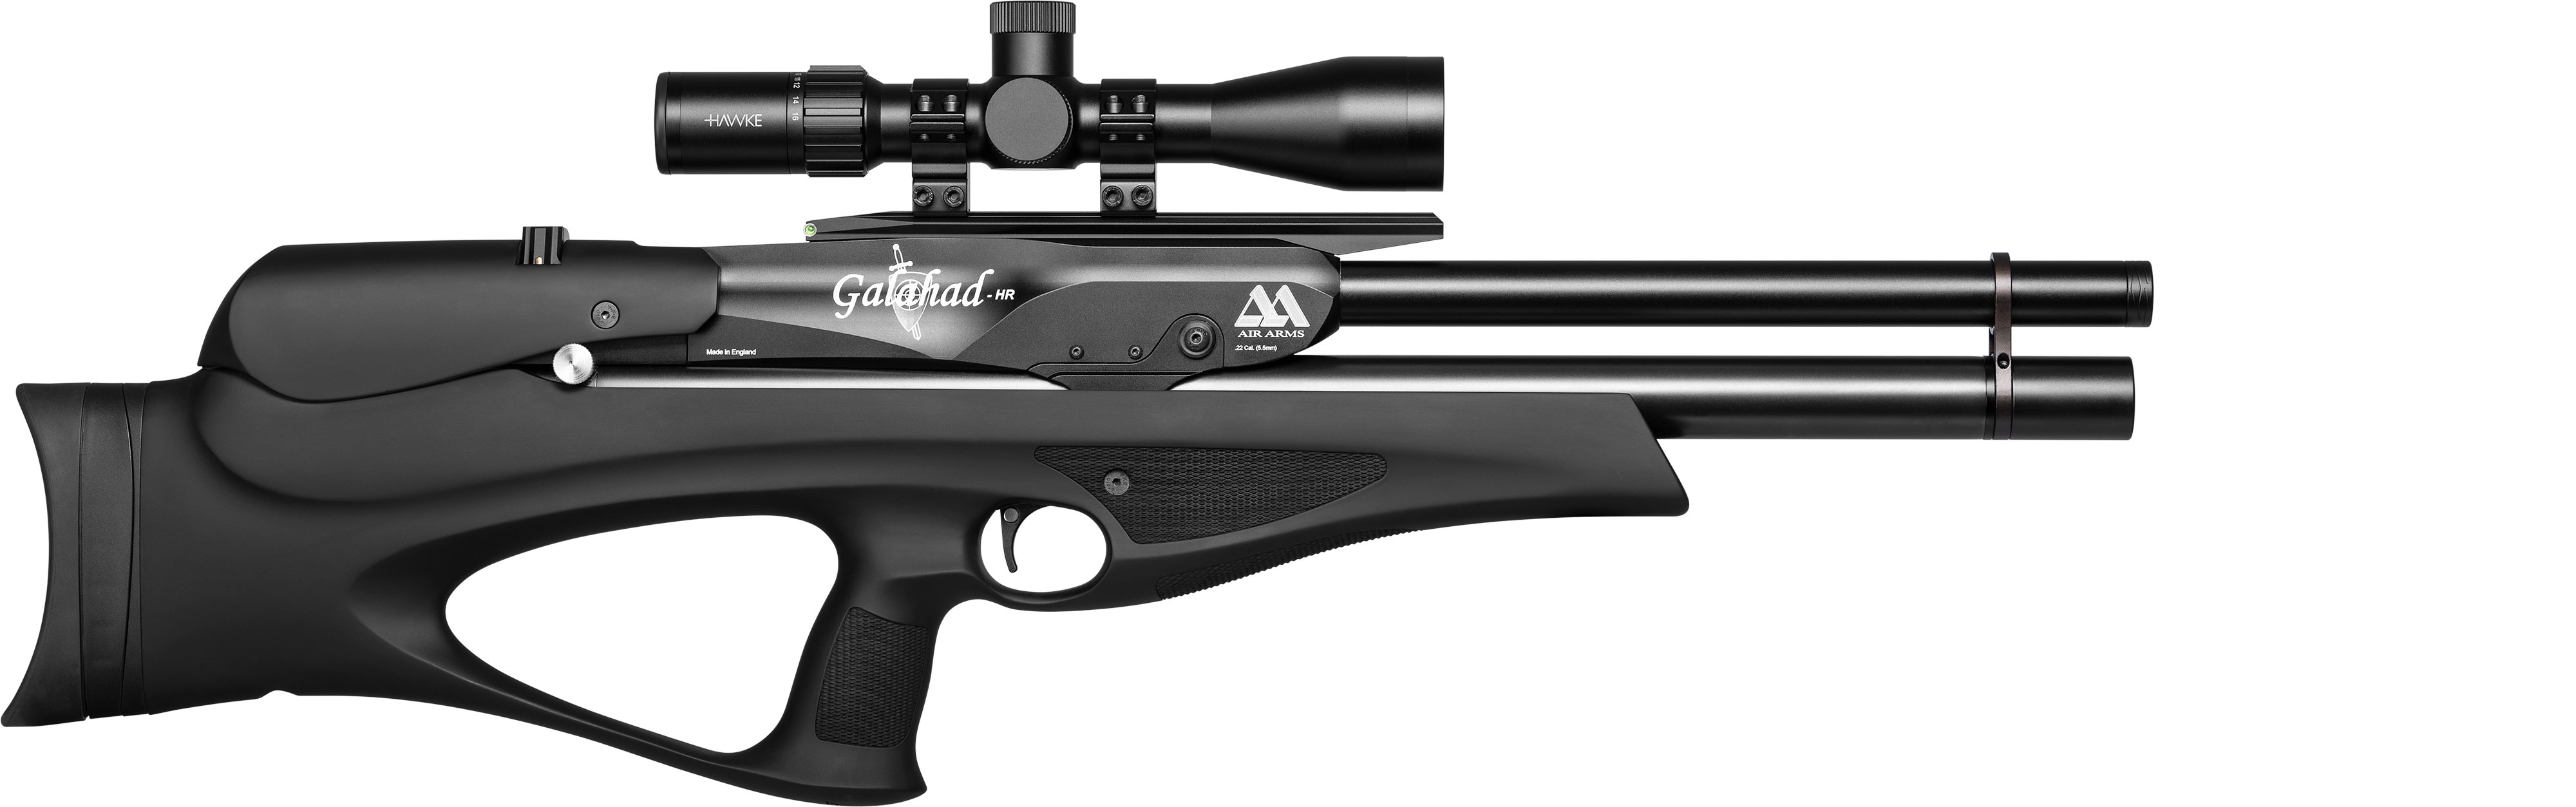 Galahad HP Rifle Soft-Touch Black